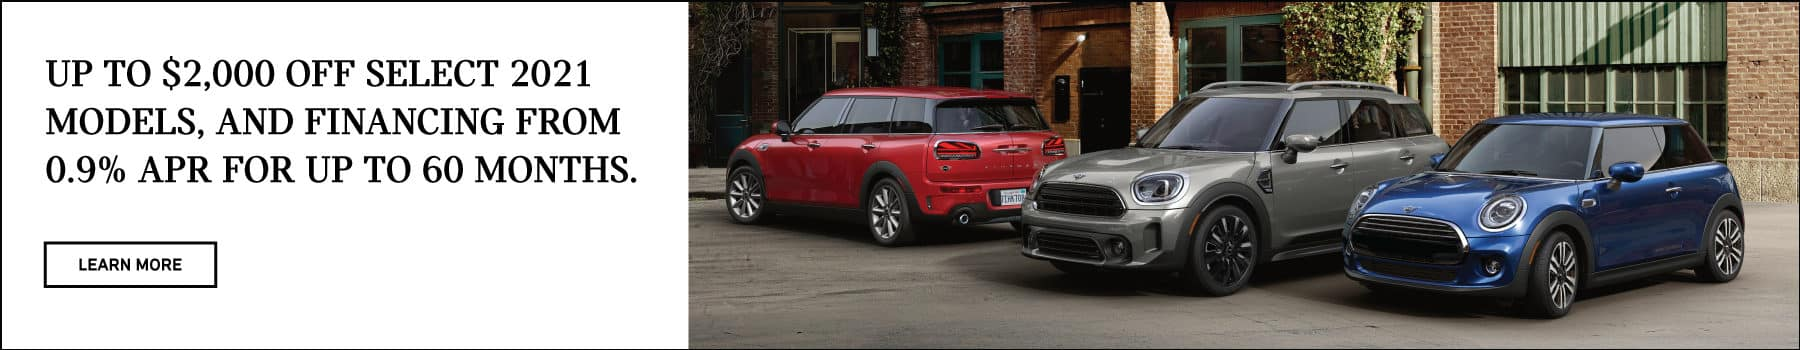 Up to $2,000 off select 2021 models, and financing from 0.9% APR for up to 60 months. Valid through 05/02/21. Click to learn more. See dealer for full details. Picture shows a red MINI Cooper Clubman, a gray MINI Cooper Countryman, and a blue MINI Cooper Hardtop 2 Door parked next to each other in an urban area.